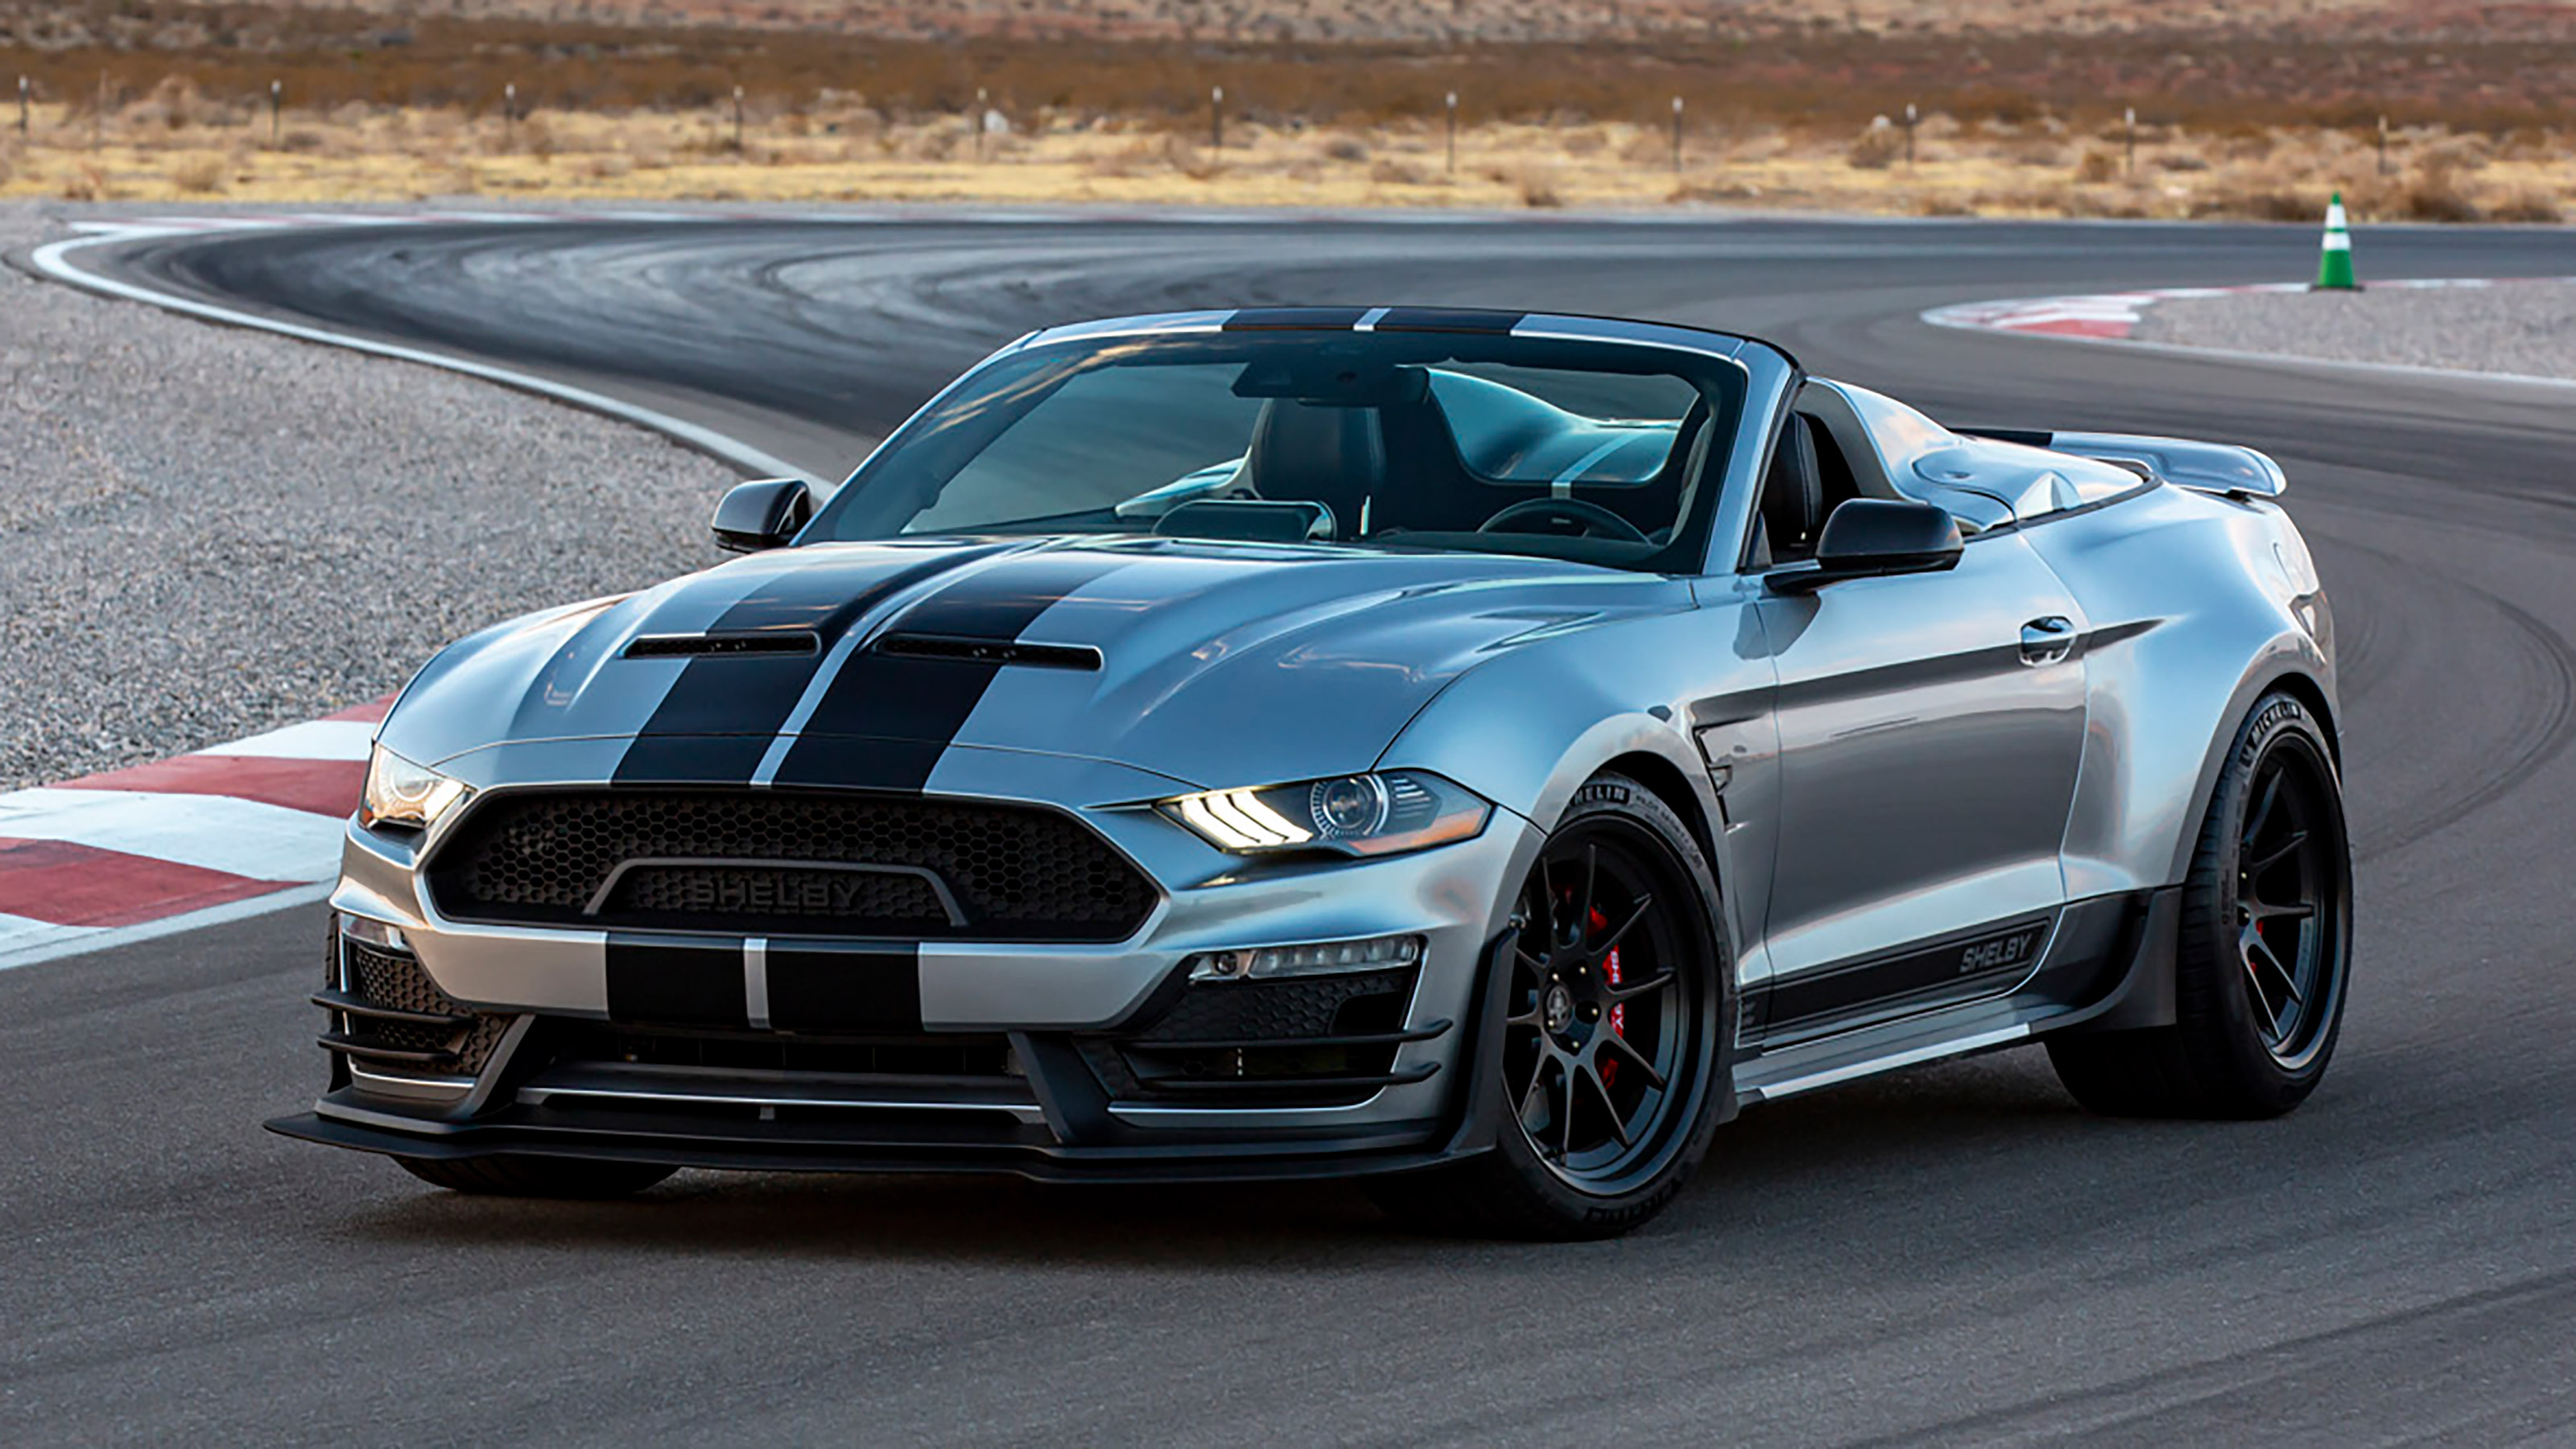 Shelby Super Snake Speedster takes 812bhp muscle car open-air